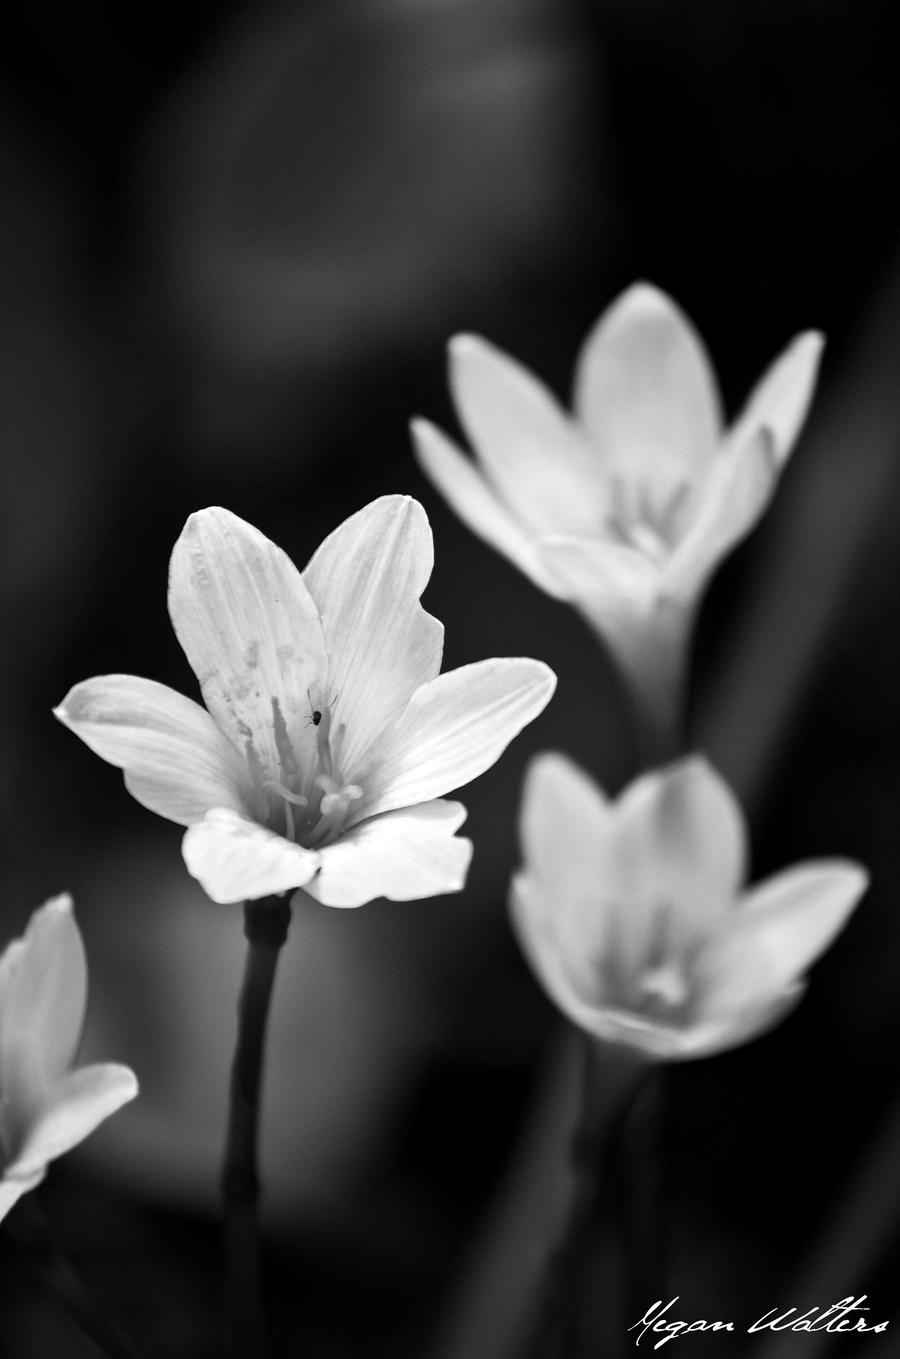 Small White Flowers By Miern On Deviantart